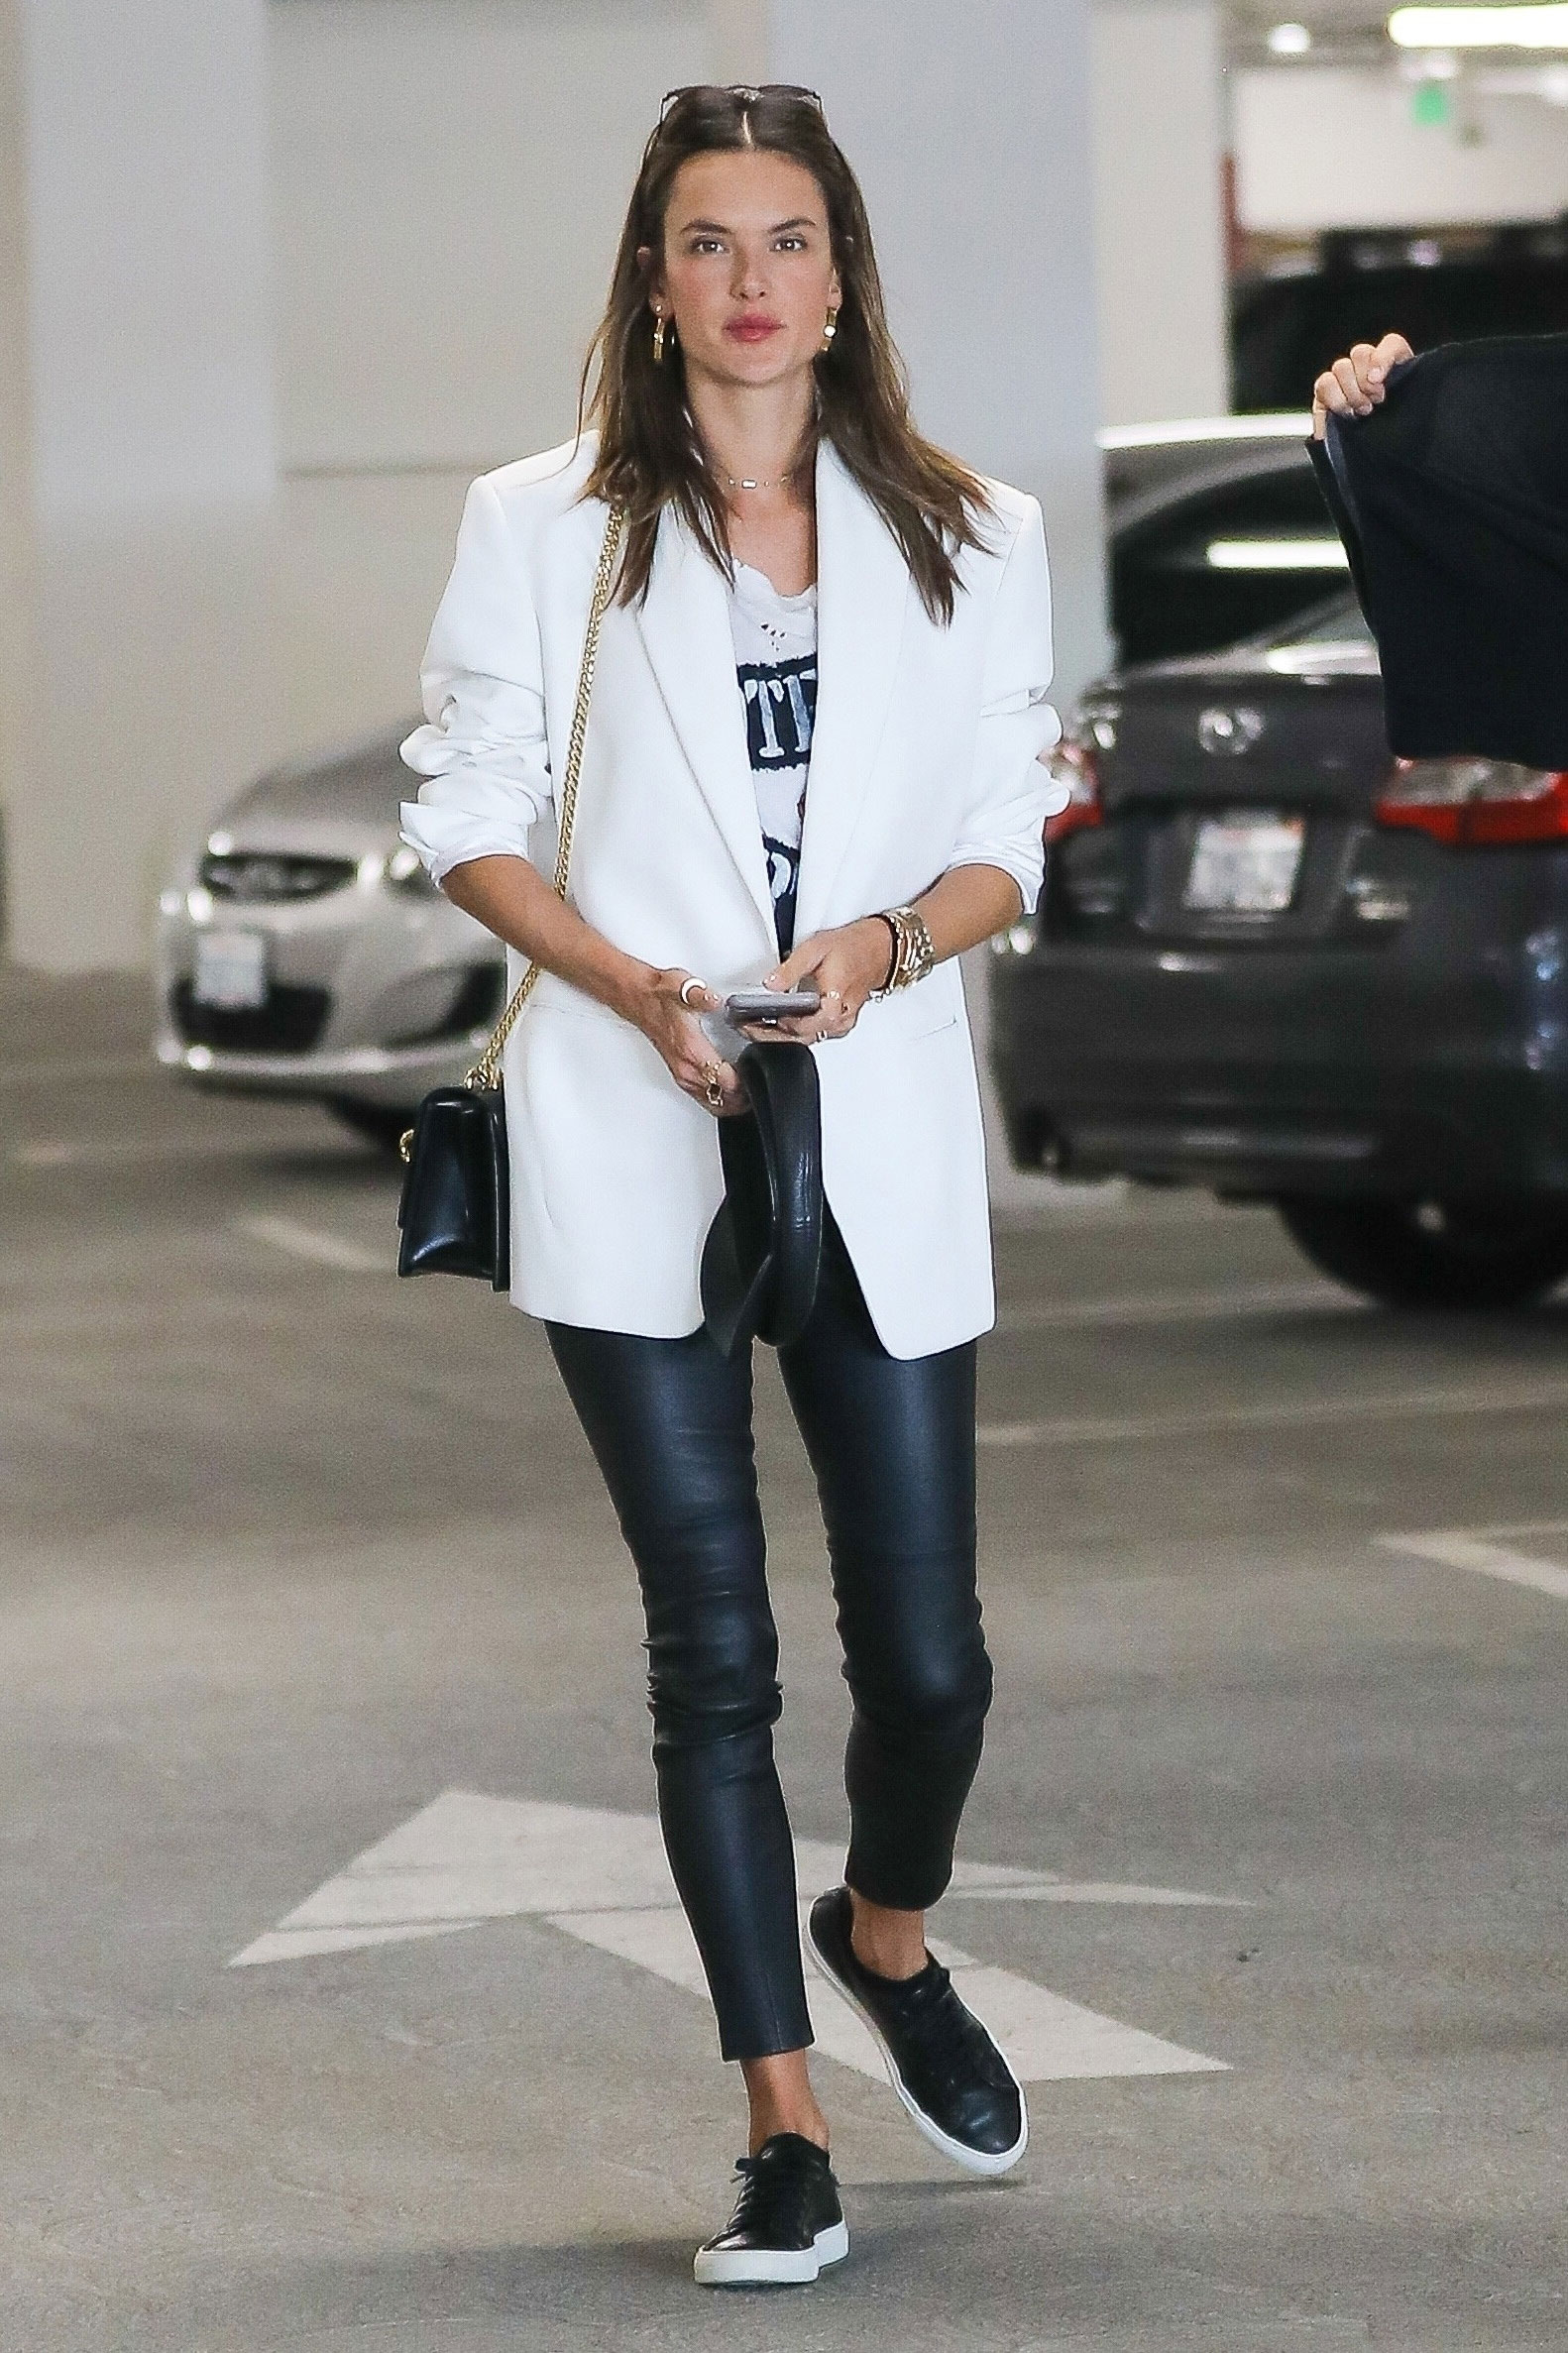 Alessandra Ambrosio's white blazer, graphic tee, liquid leggings and leather sneakers look for less